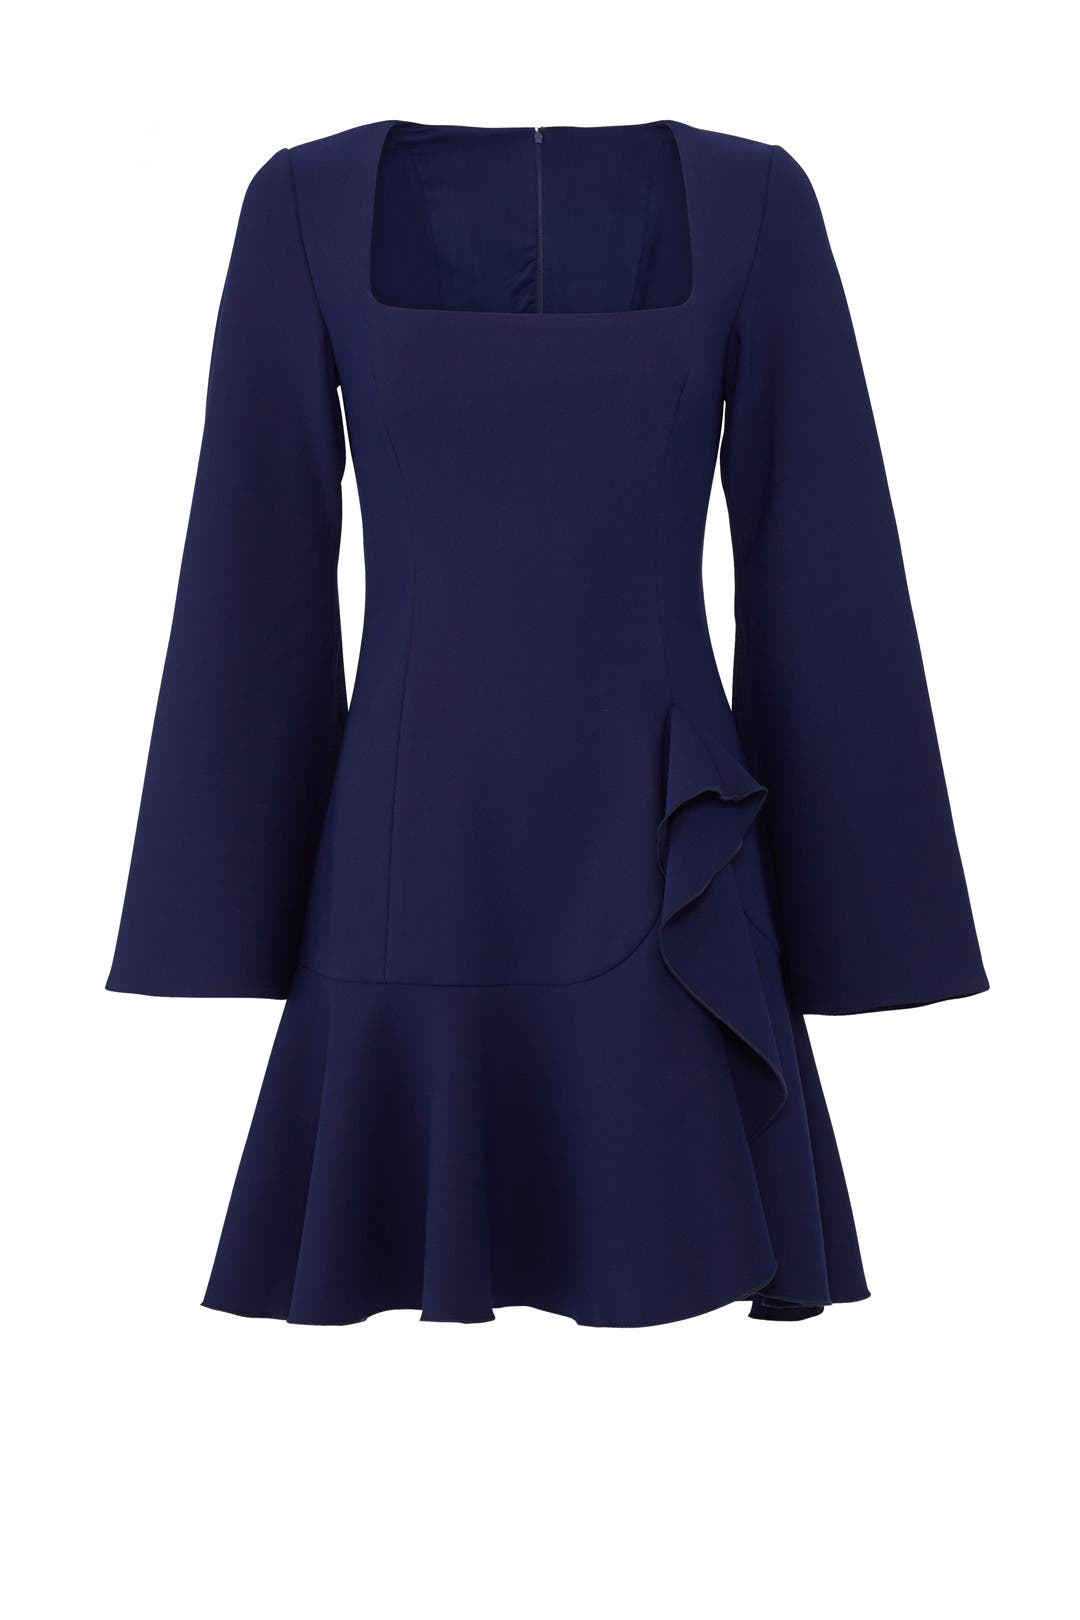 9cca5fabd0780 Goodbye Long Sleeve Dress by FINDERS KEEPERS for $30 | Rent the Runway